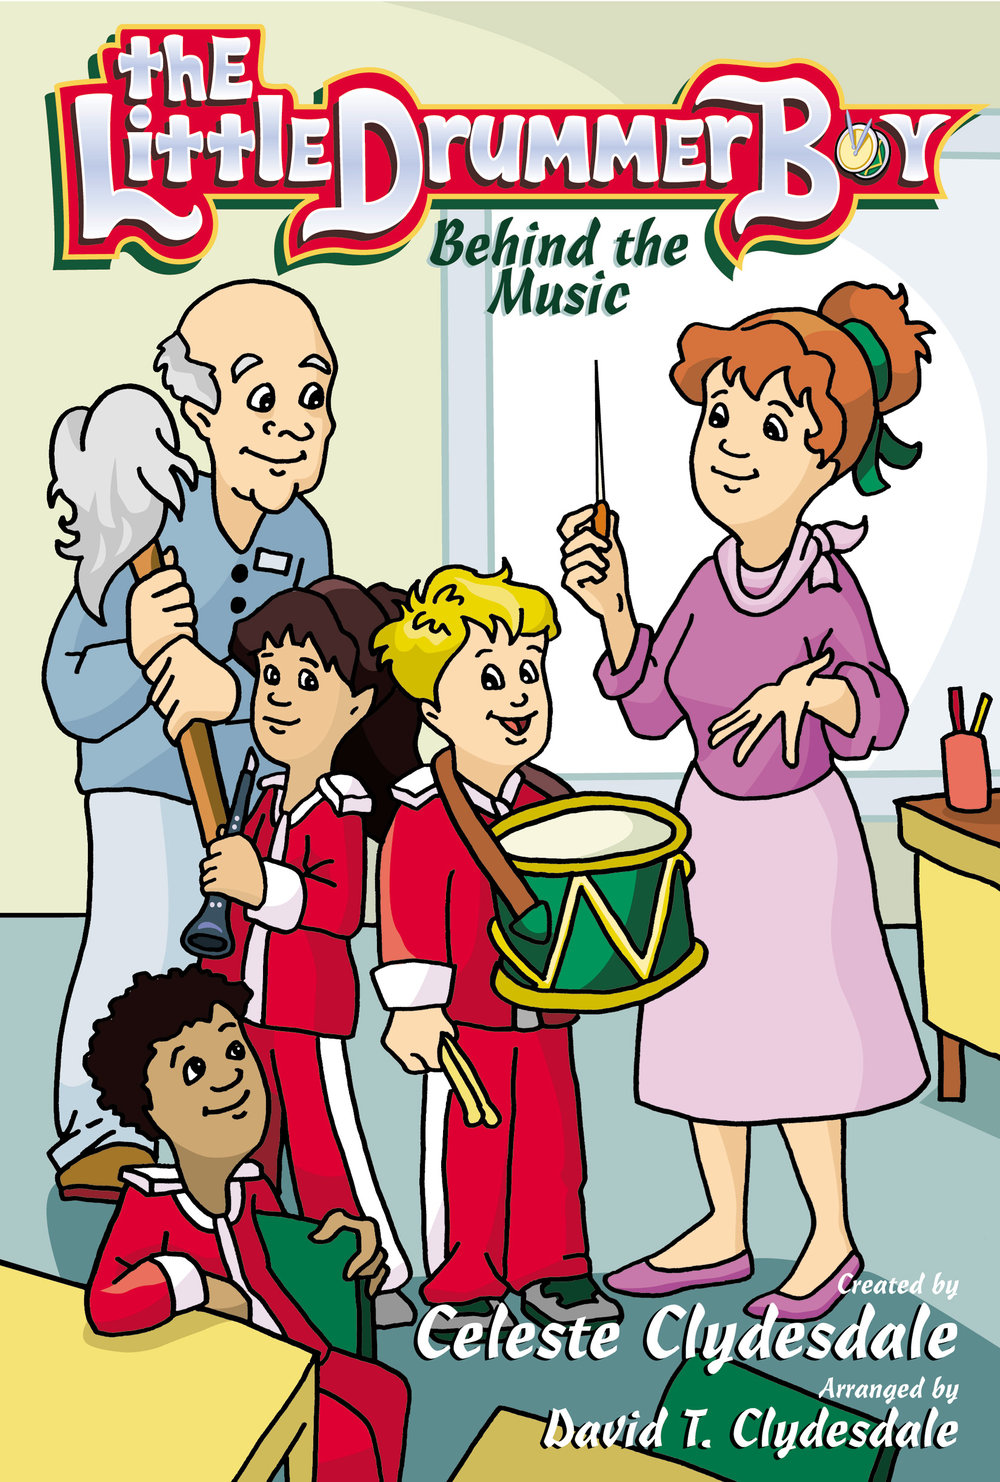 """From dynamic children's writer Celeste Clydesdale comes this upbeat, heartfelt musical, just in time for Christmas! Michael, """"the little drummer boy,"""" attends Calvary Christian School, where he plays in the band. The students are getting ready for the Christmas parade under the direction of their new music teacher, Mrs. Newman. Through her help, and the help of the school janitor, Mr. Jenkins, Michael realizes that he needs a """"tune-up"""" and he learns that we are God's instruments of praise. When we surrender our lives to God and allow Him to be the song in our hearts, He will use us for His glory."""